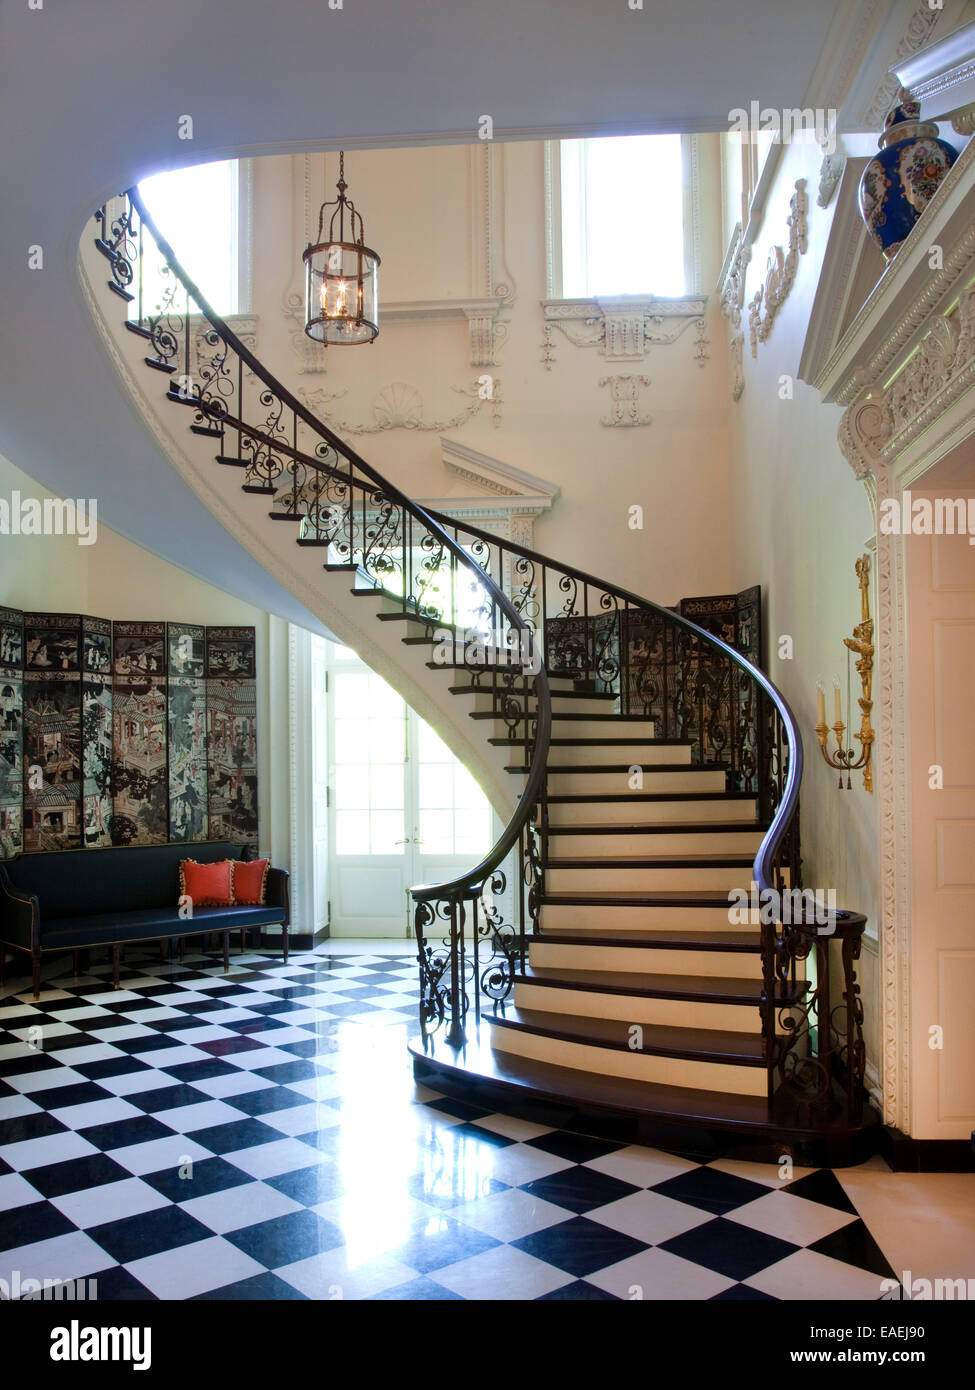 Interior Winding Stair Case In Foyer Of Swan House Stock ...